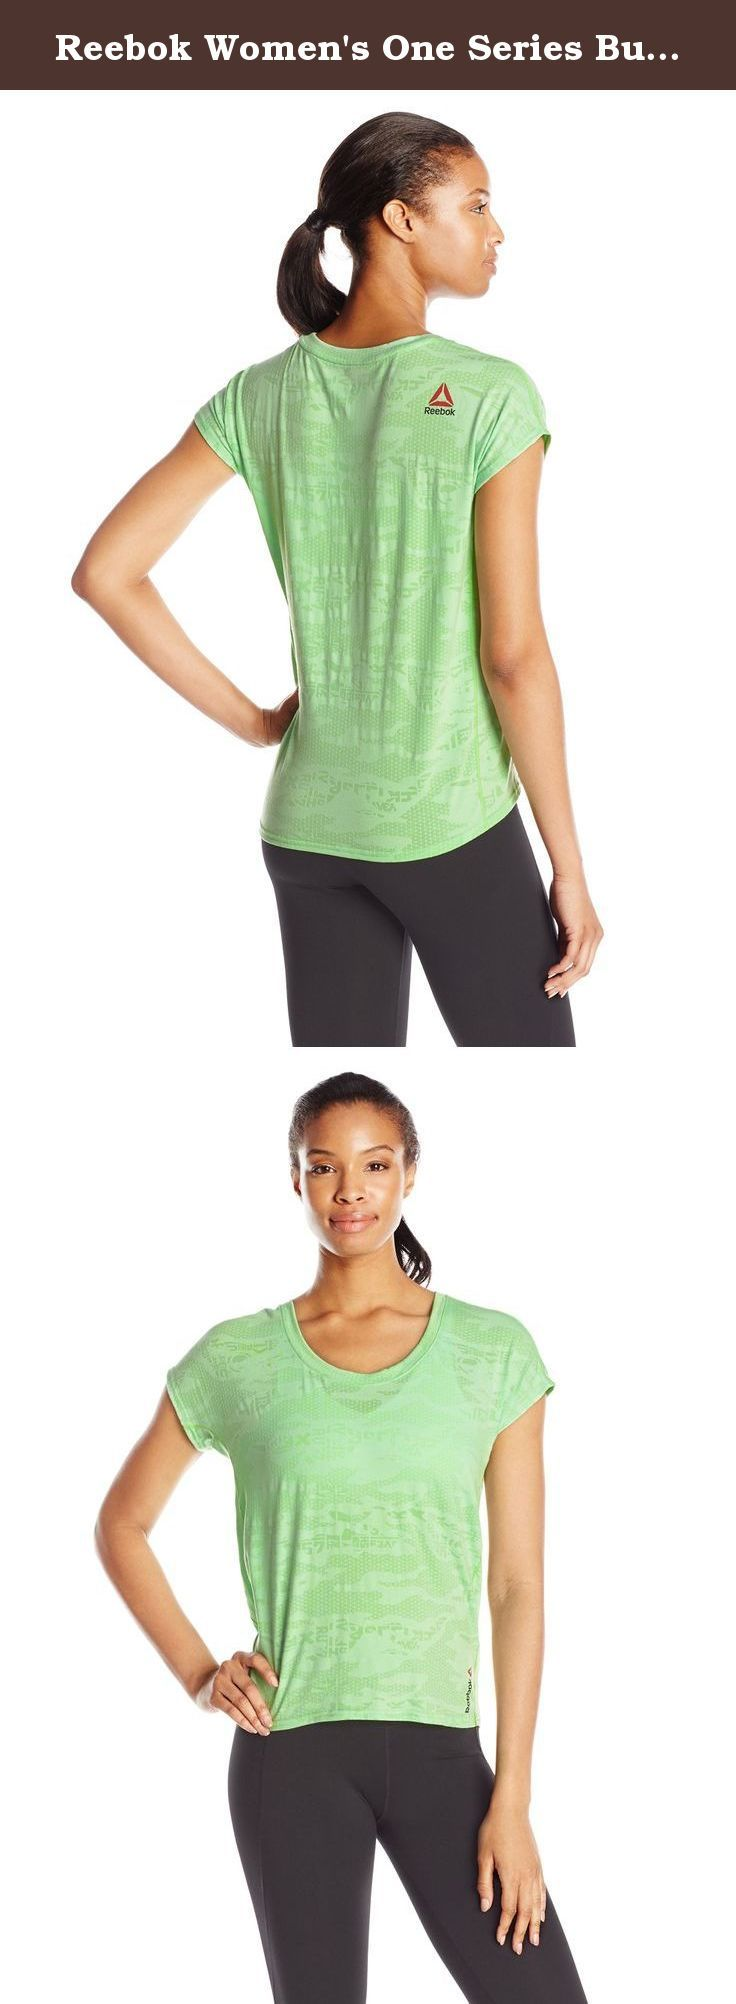 Reebok Women's One Series Burnout Tee, Seafoam Green R, X-Small. Get your workout on in this comfy burnout tee. Speedwick fabrication keeps you cool and dry drapey silhouette and shaped hem Reebok logo graphic.